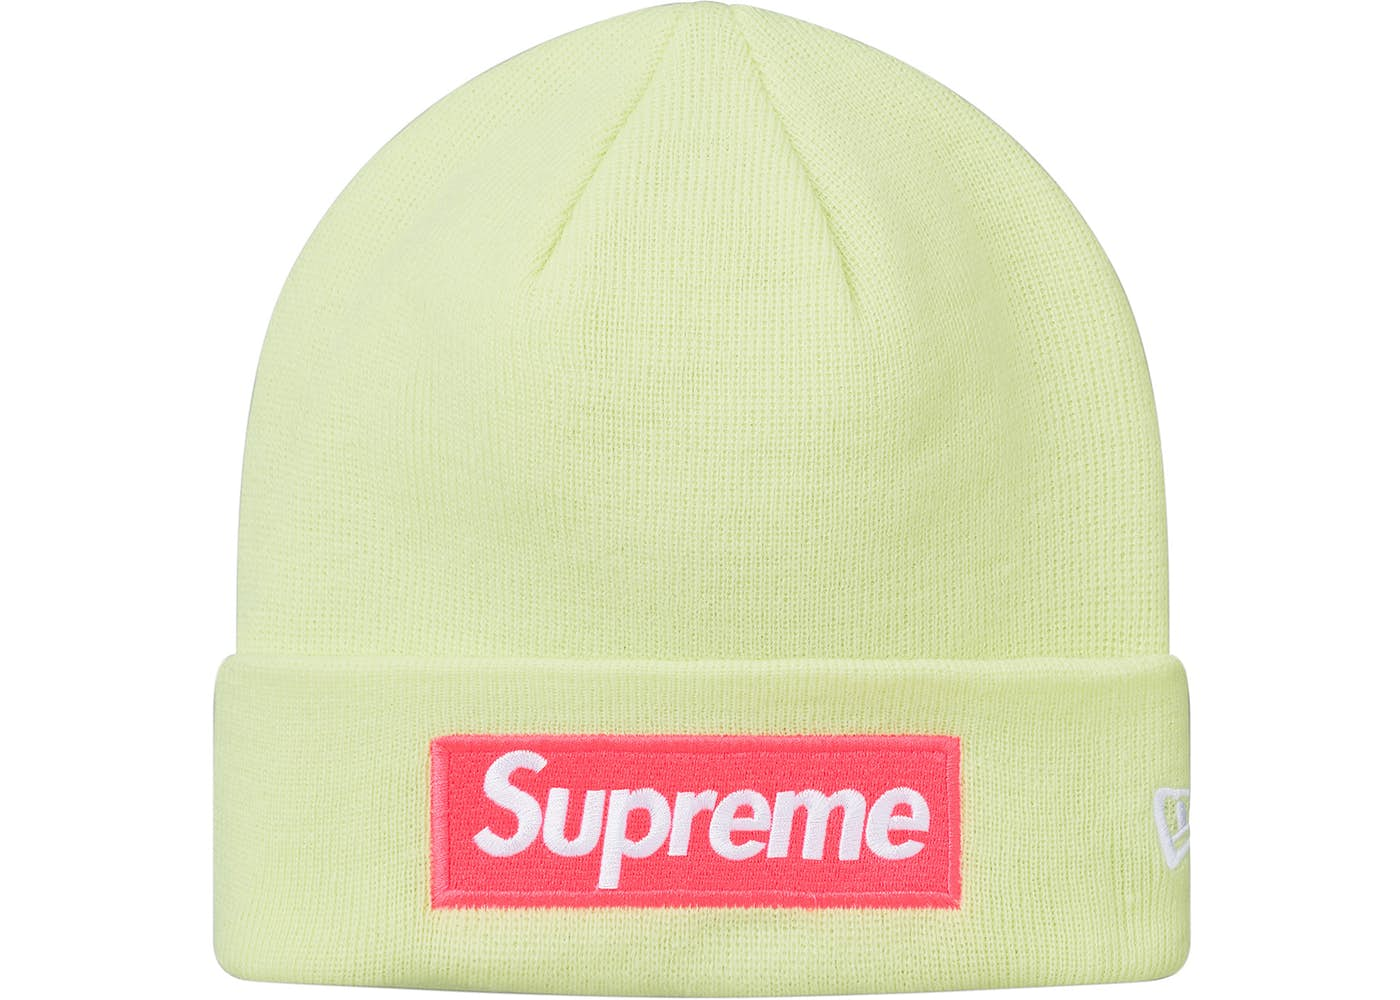 Supreme New Era Box Logo Beanie (FW17) Pale Lime – Halftime Sneakers ... 5379d7c93bc